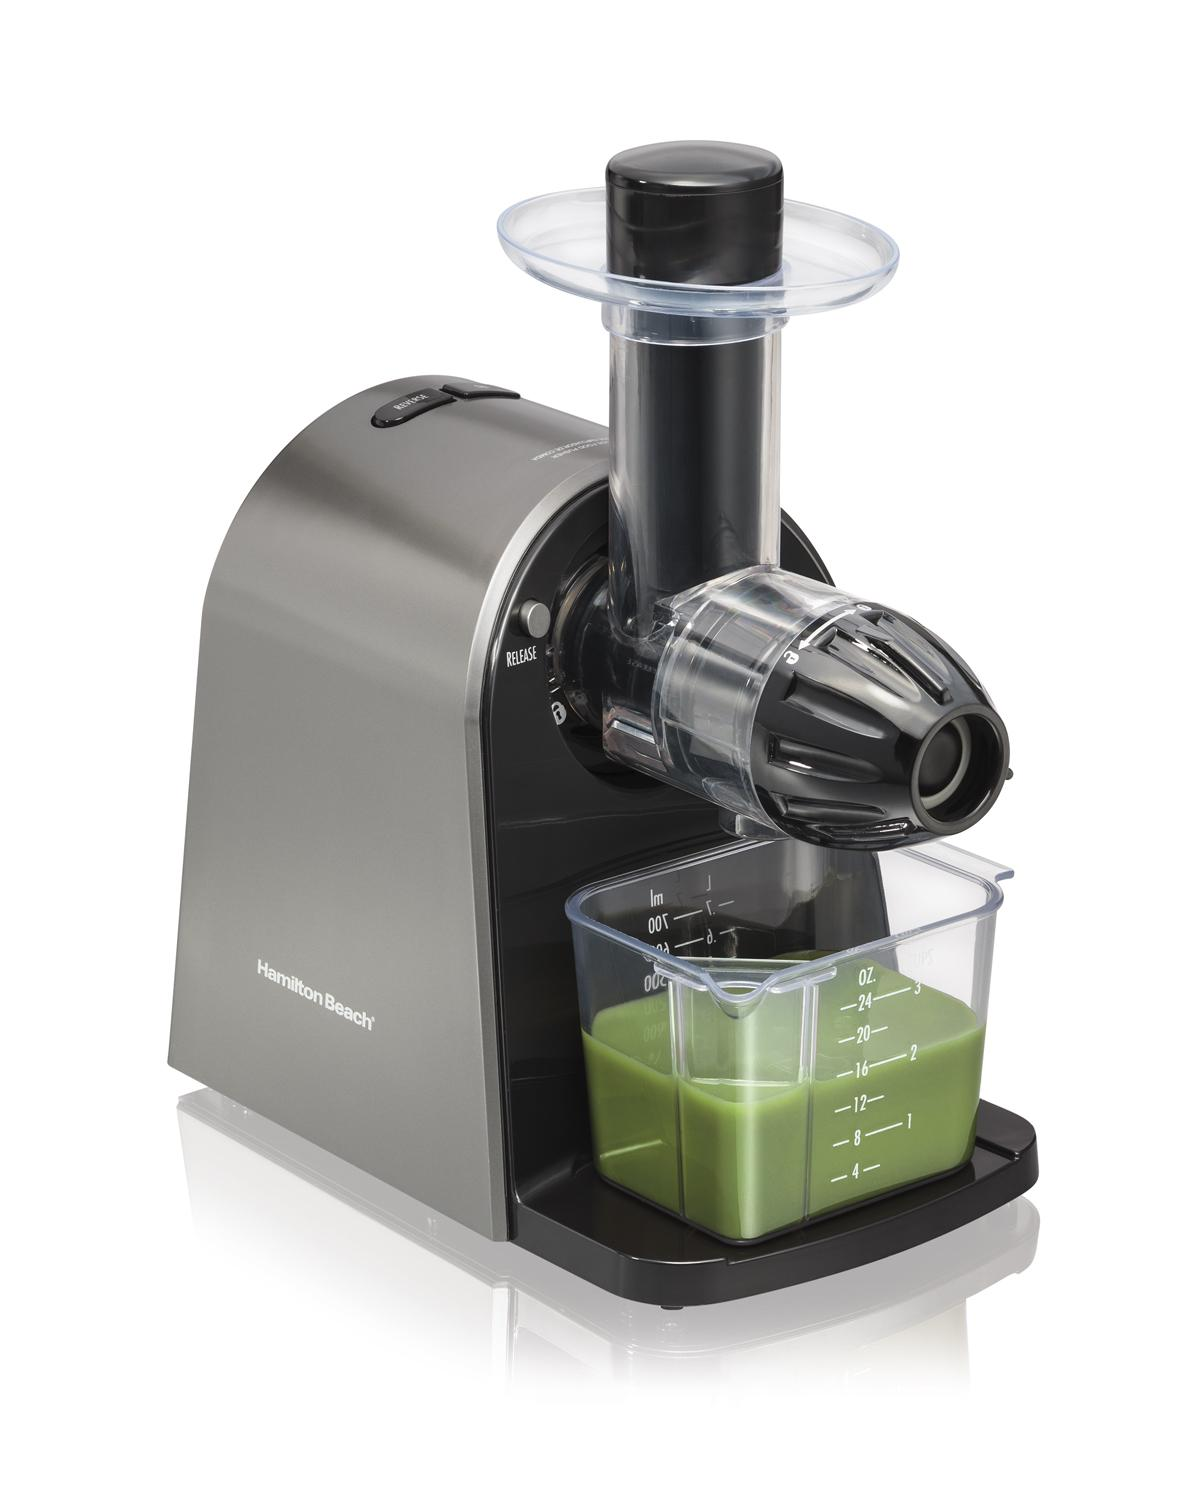 Gemini Slow Juicer Review : juicer breville commercial cuisinart omega extractor slow juicers electric vegetable masticating